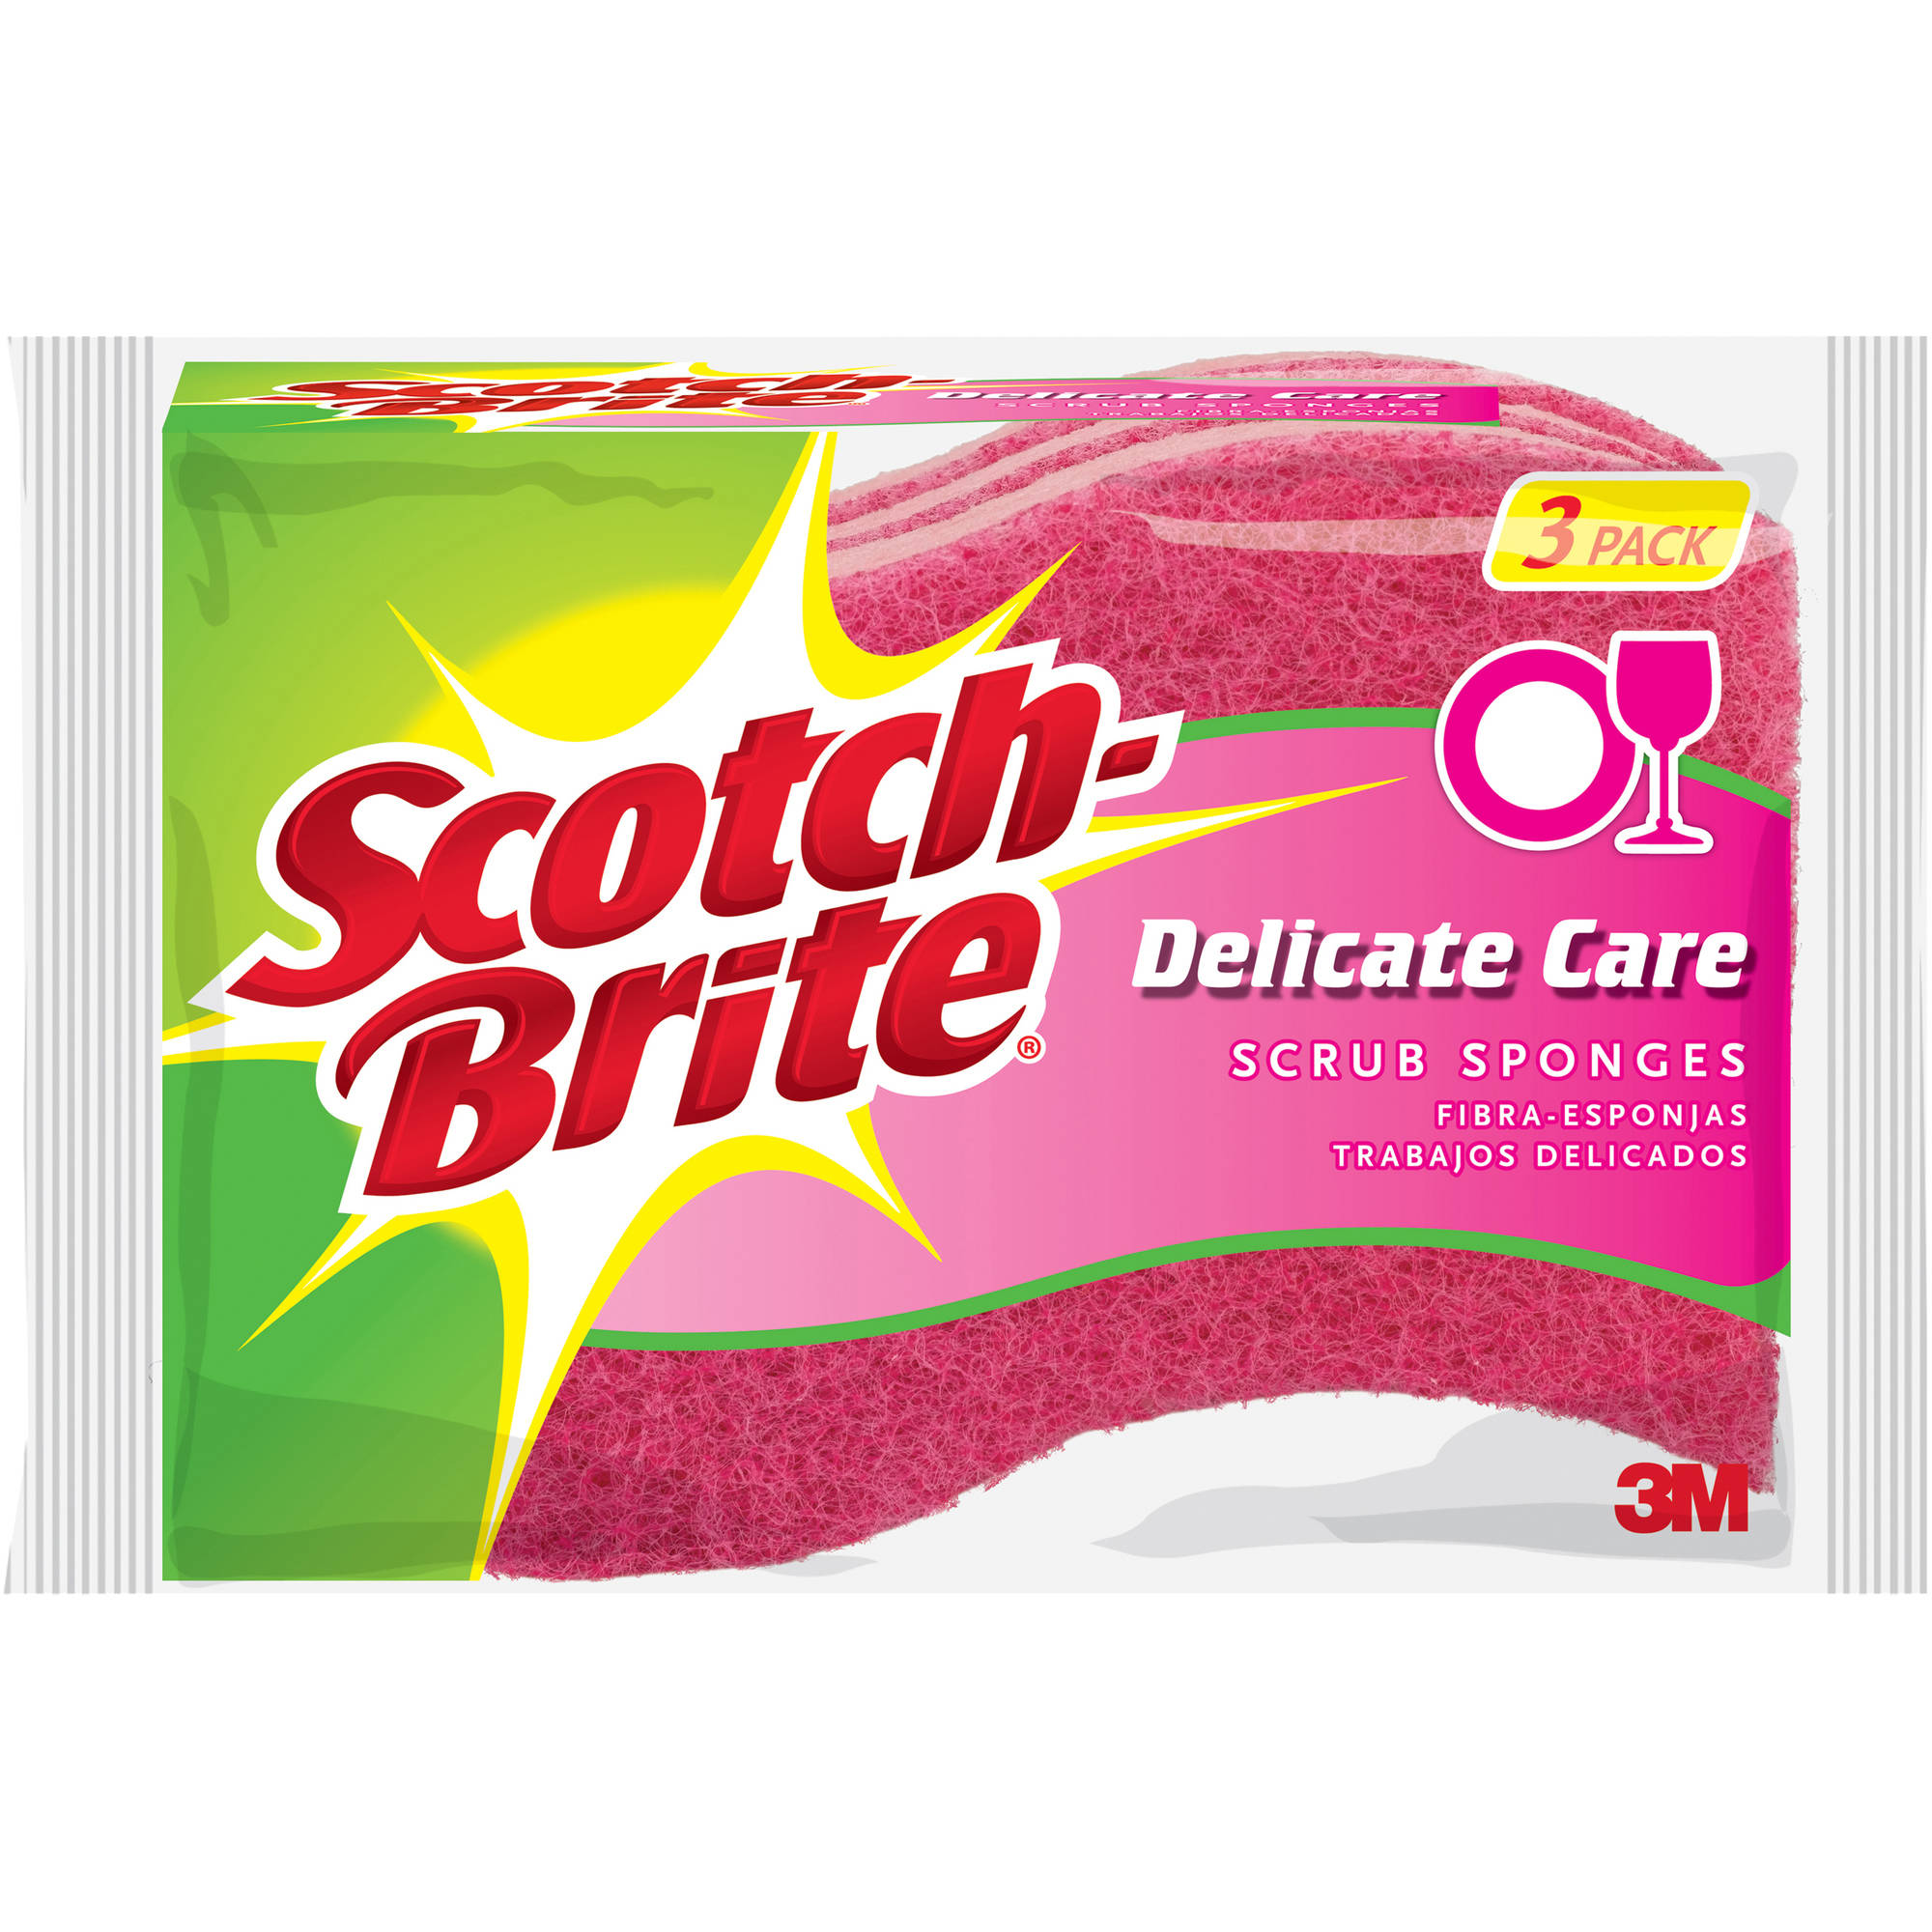 Scotch-Brite Delicate Care Scrub Sponge, 3 count